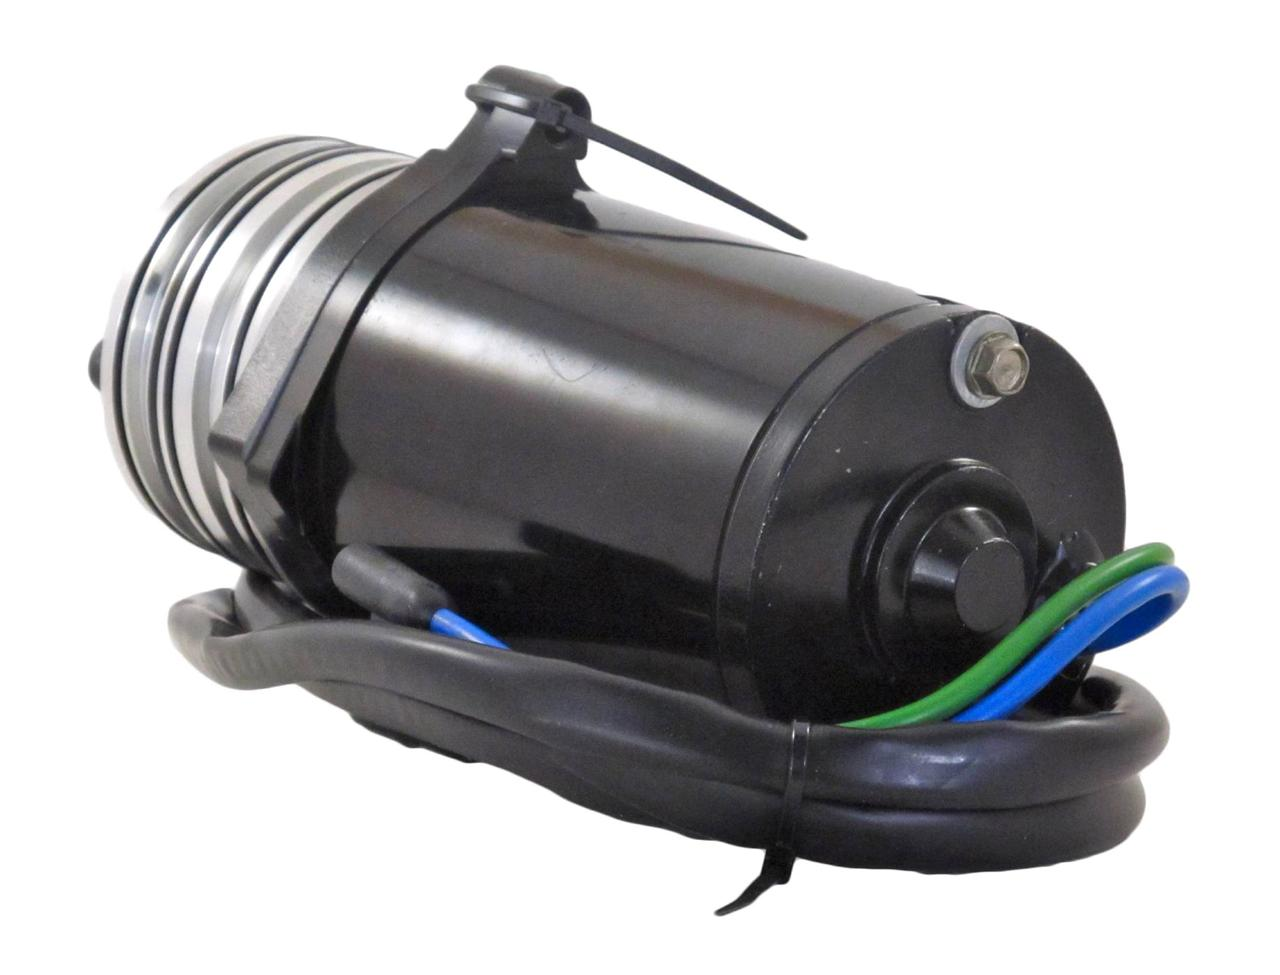 New Power Tilt Trim Motor Mercury 99186 991861 99186t